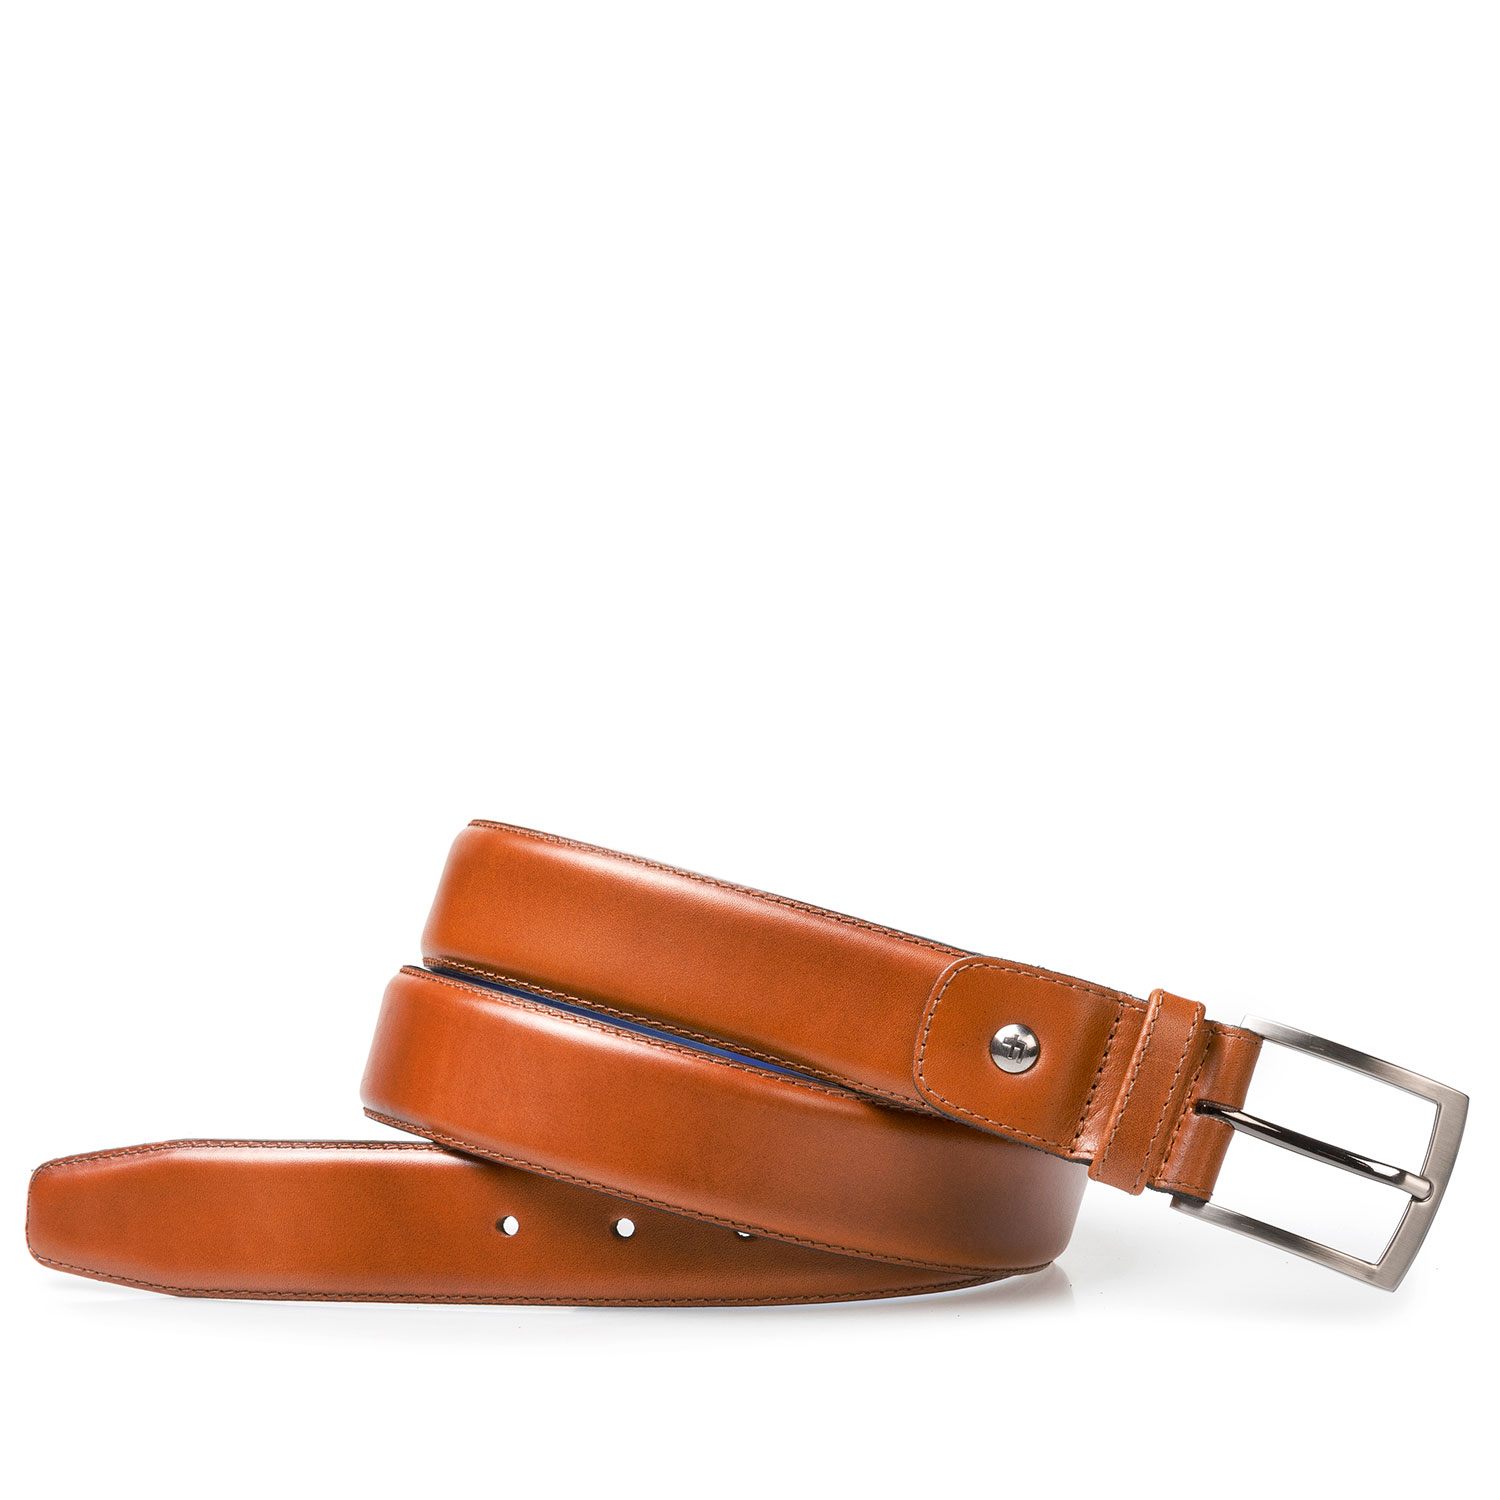 75046/02 - Cognac-coloured leather belt